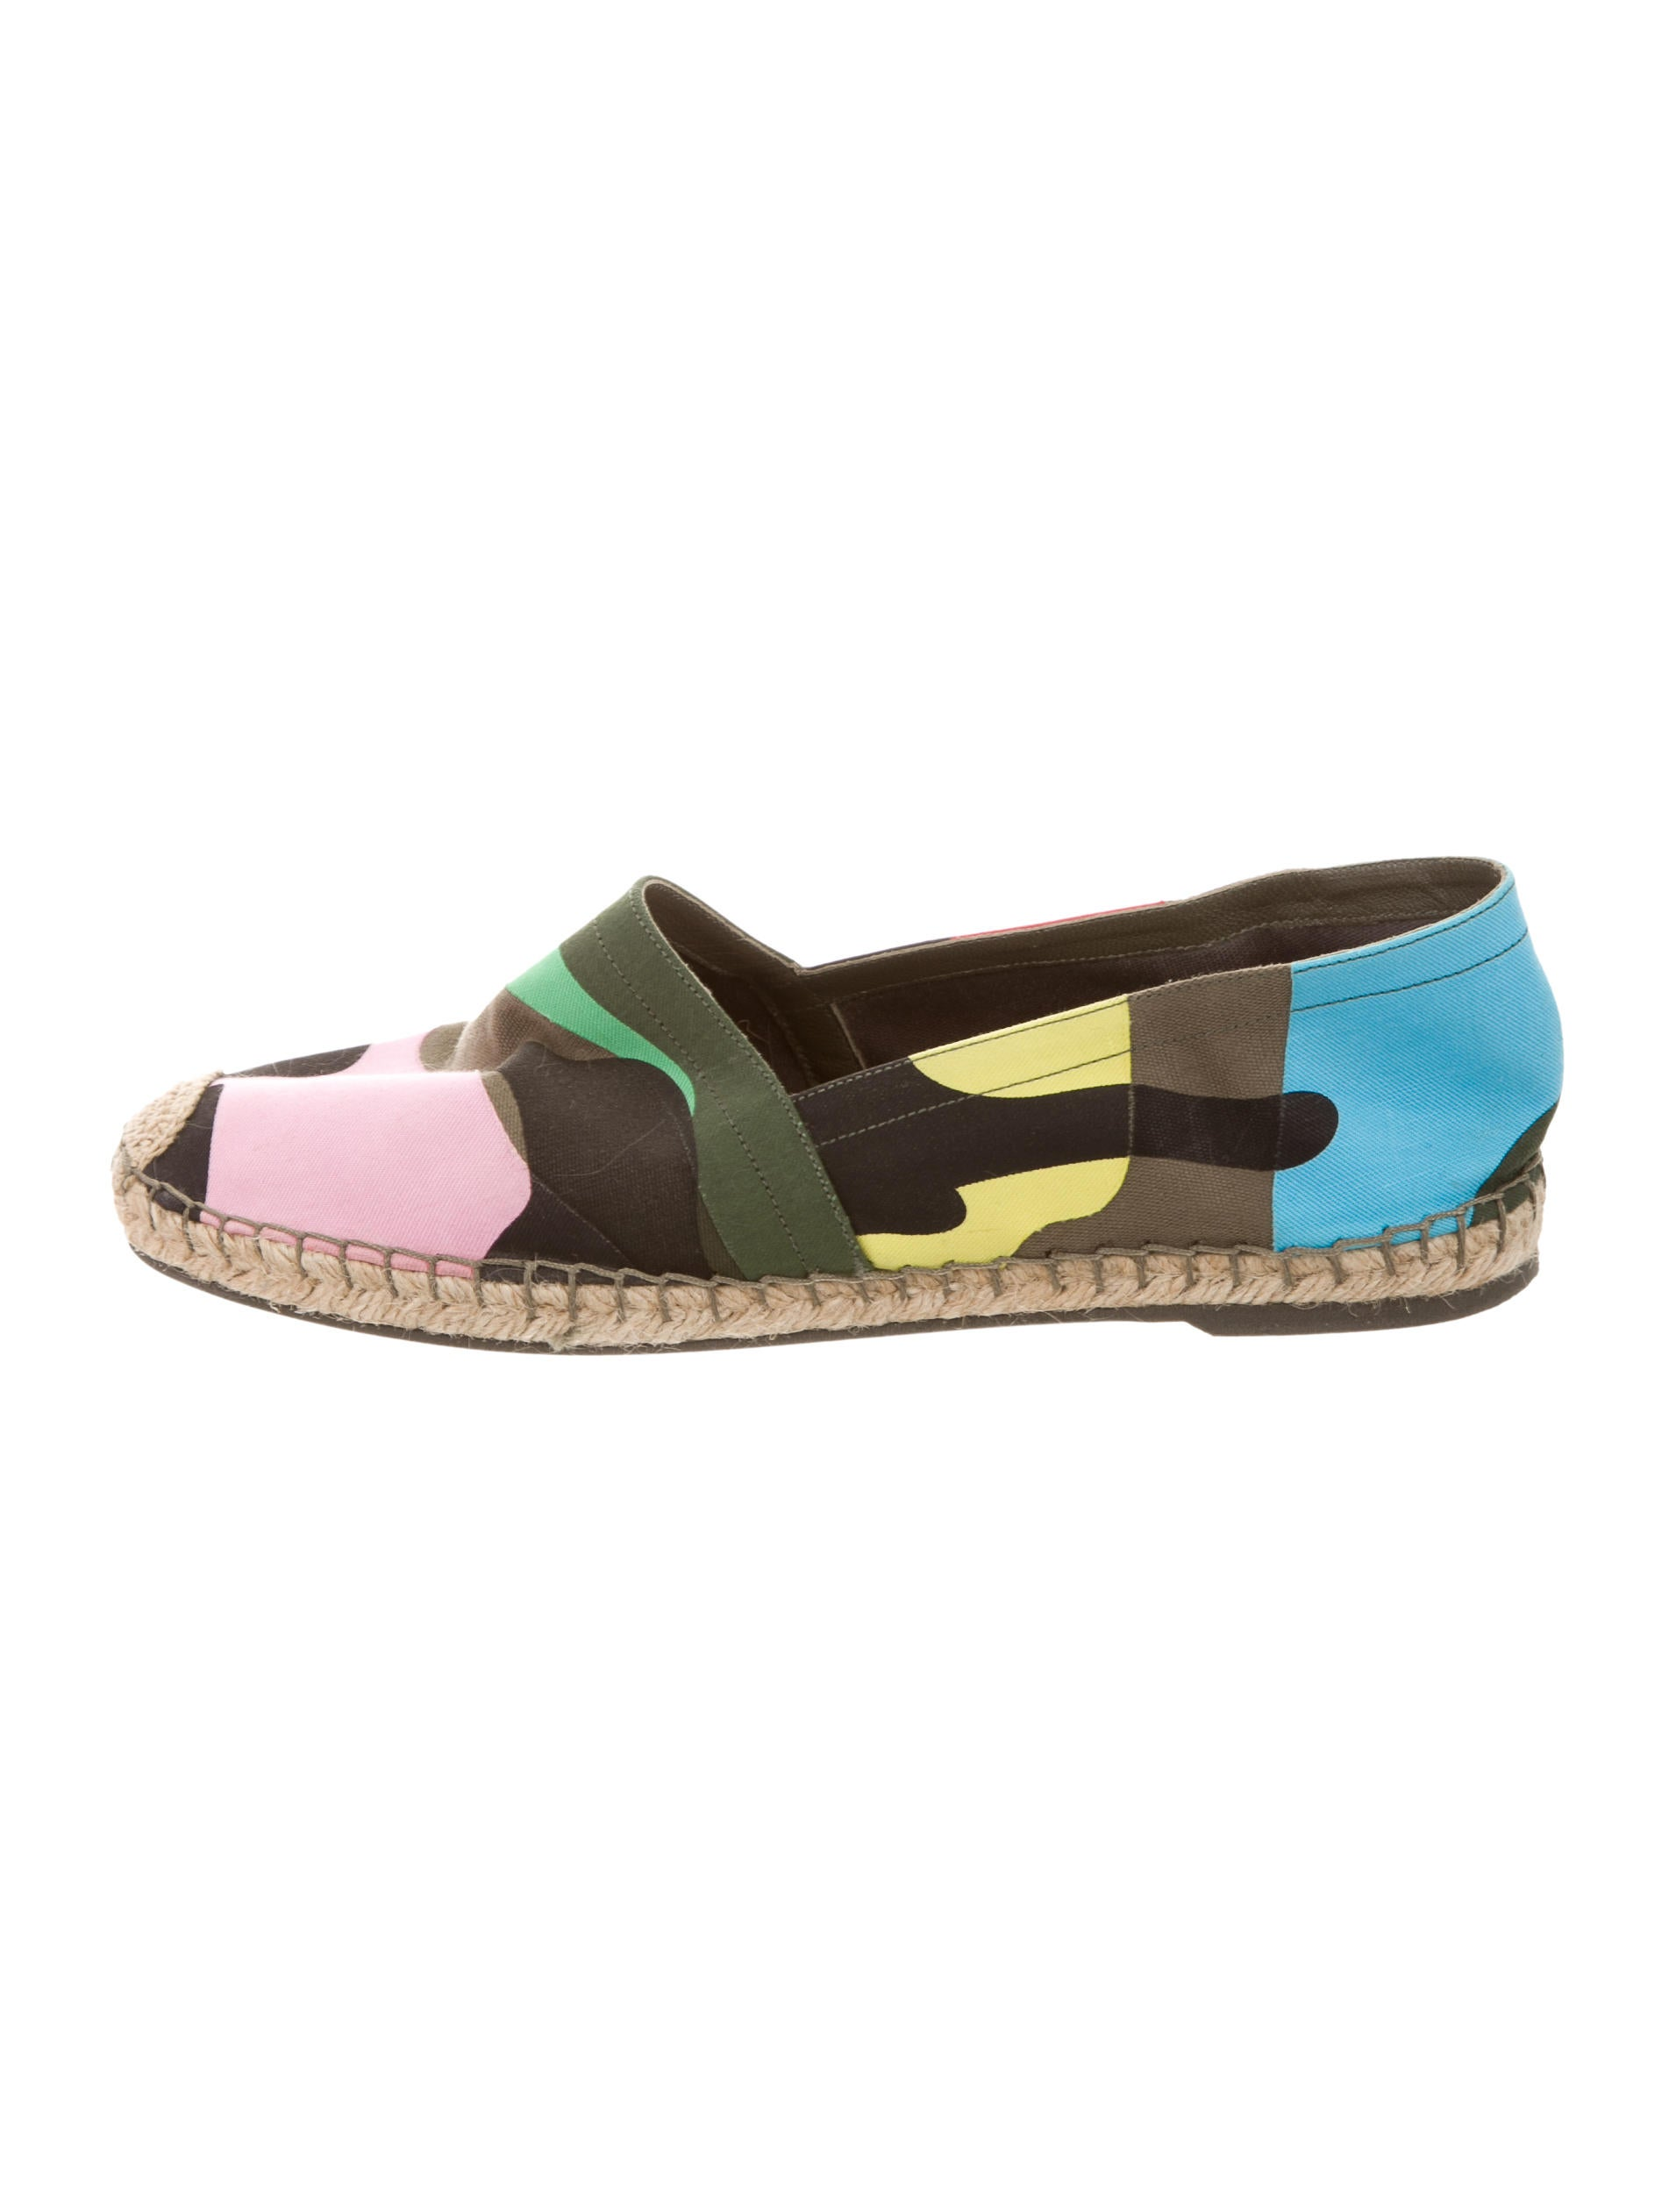 outlet best seller Valentino Psychedelic Camo Espadrilles many kinds of for sale Manchester new online 41tCGS